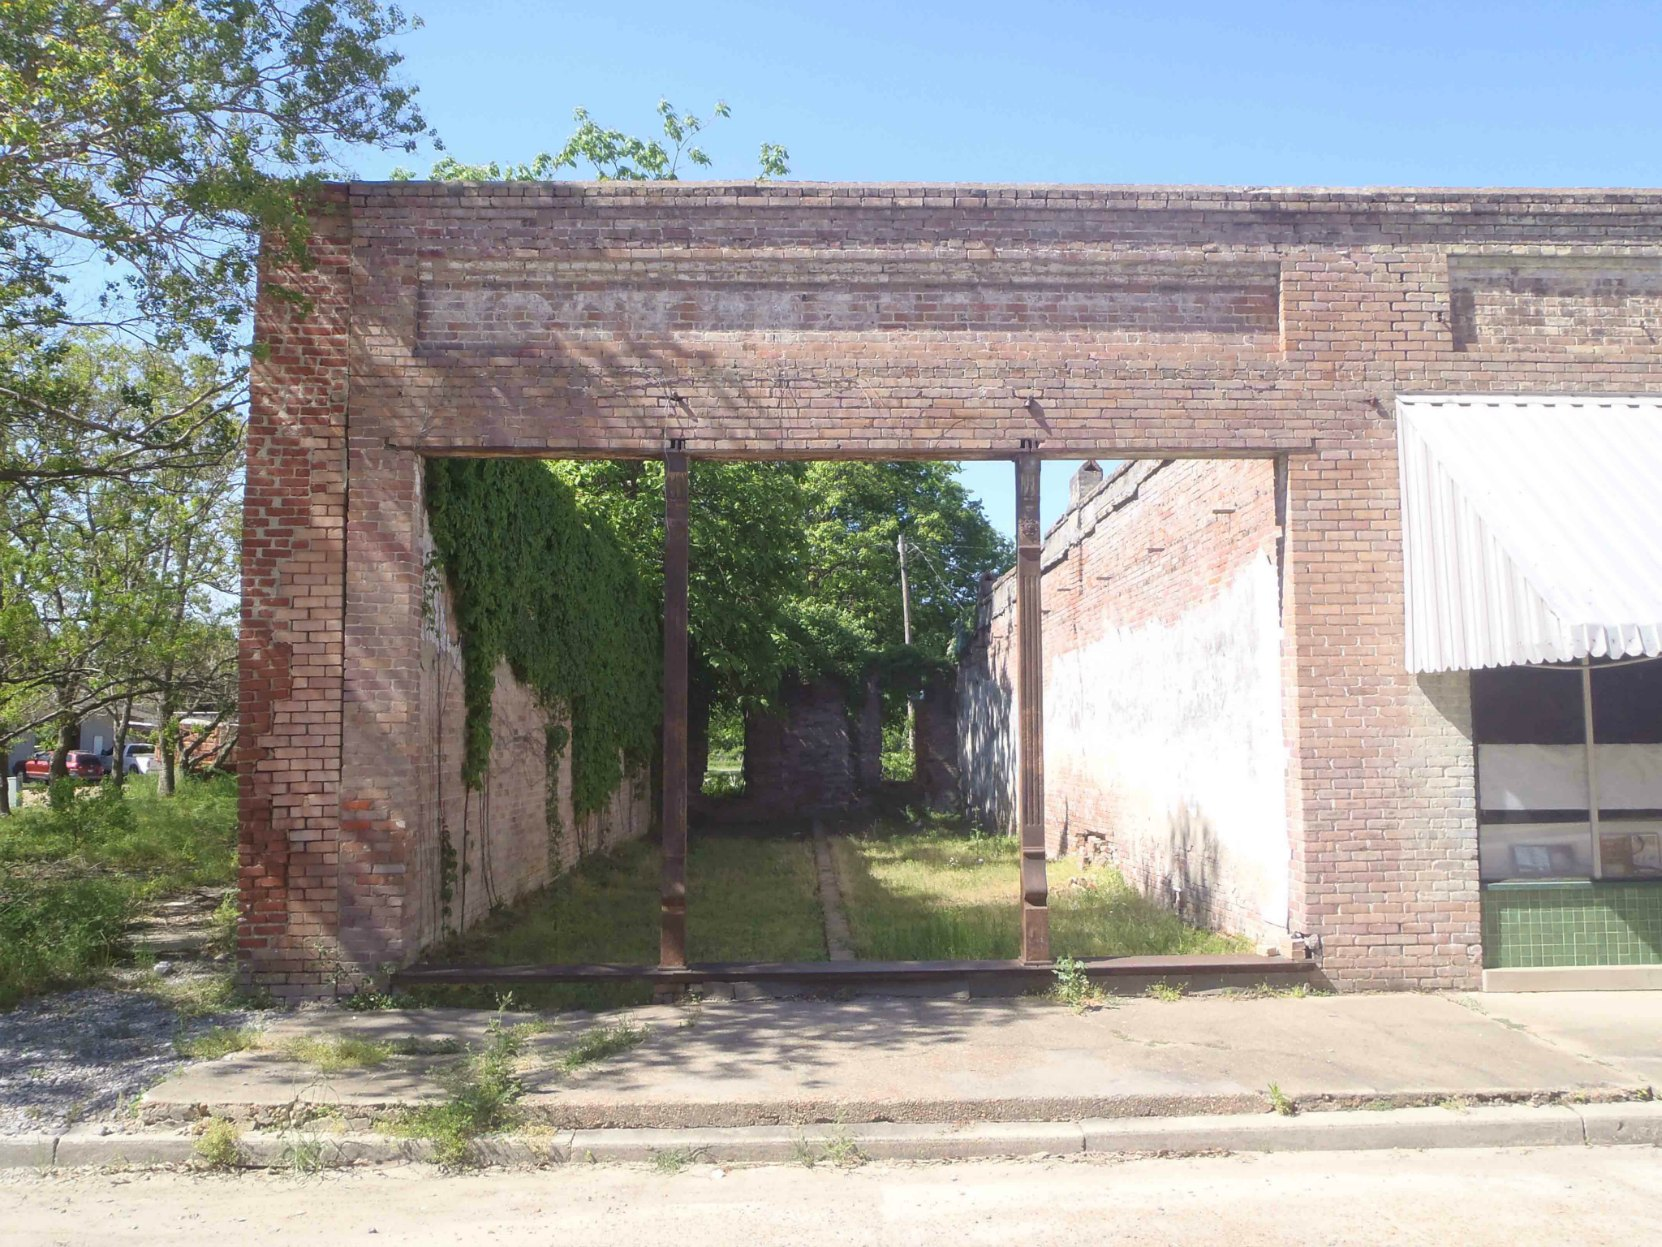 Part of a downtown building in Merigold, Mississippi.